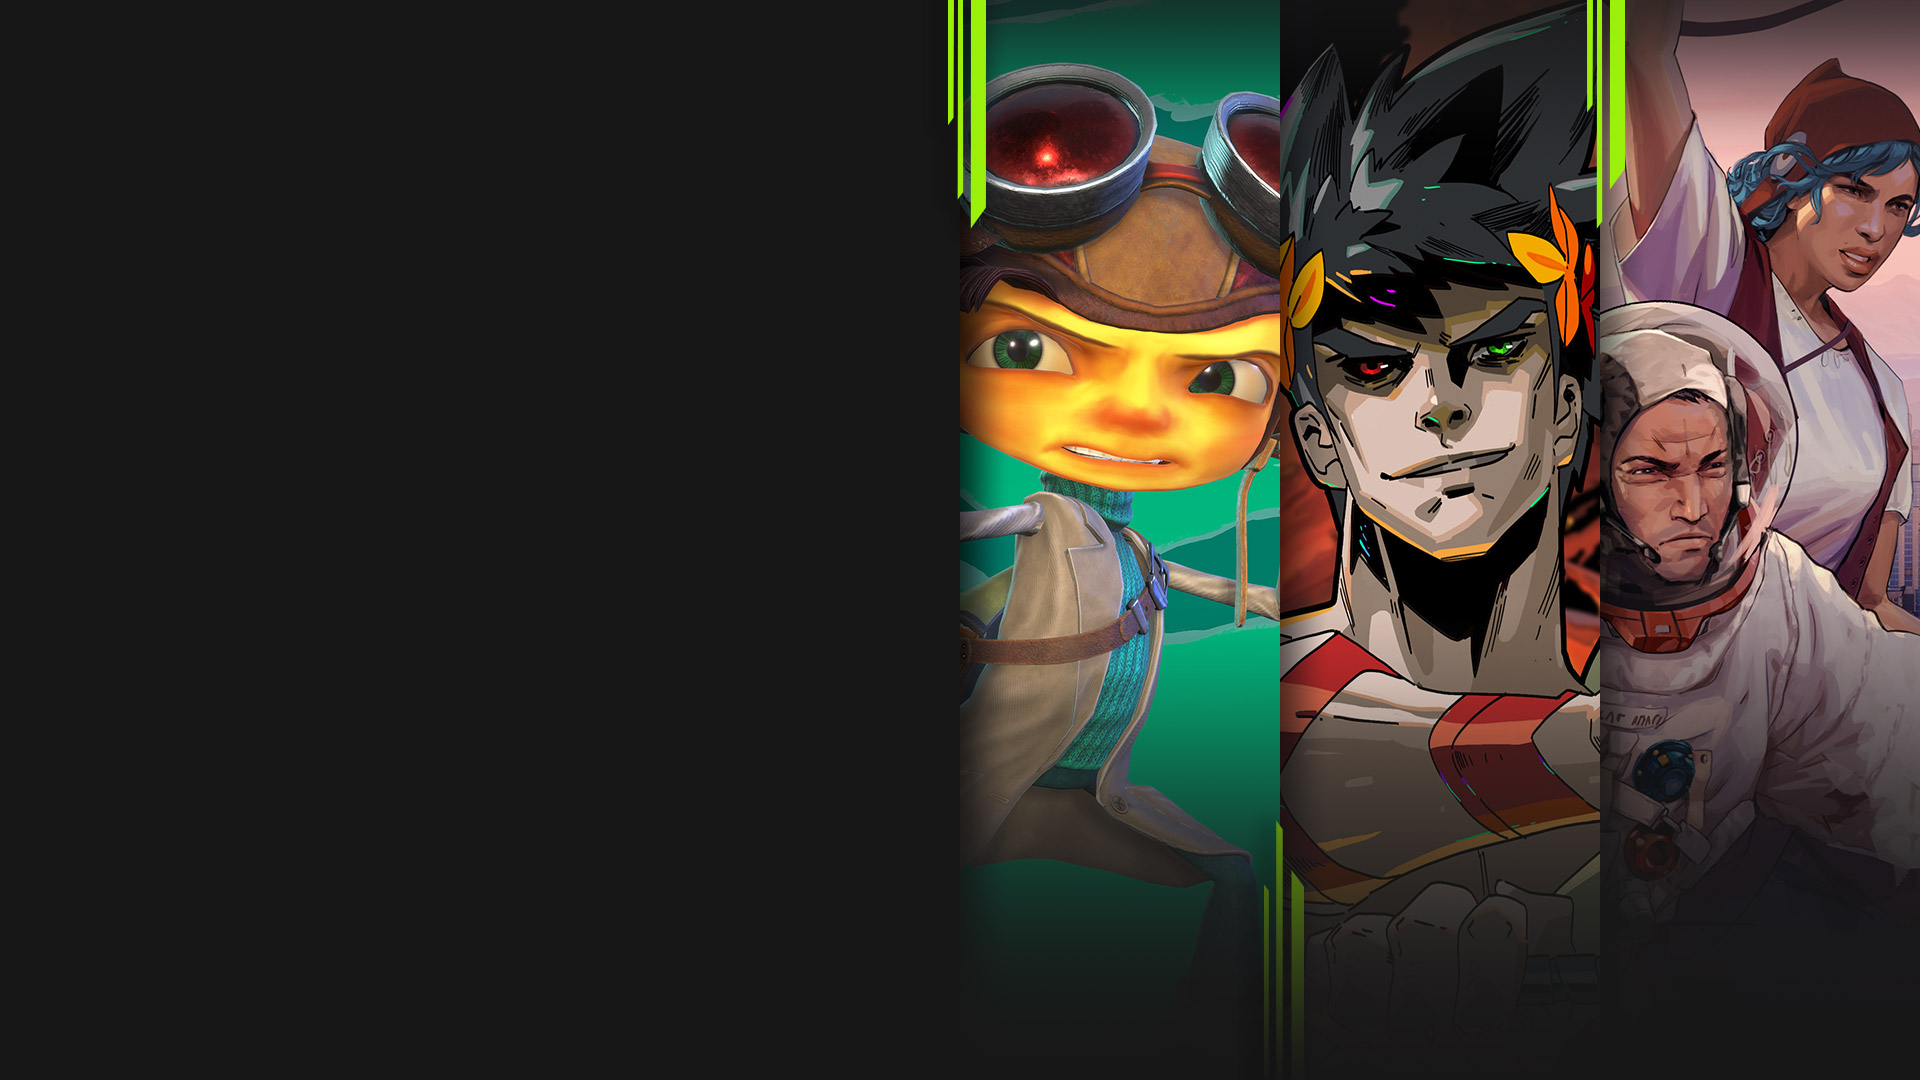 Game art from multiple games available now with Xbox Game Pass including Psychonauts 2, Hades, Humankind and Cris Tales.